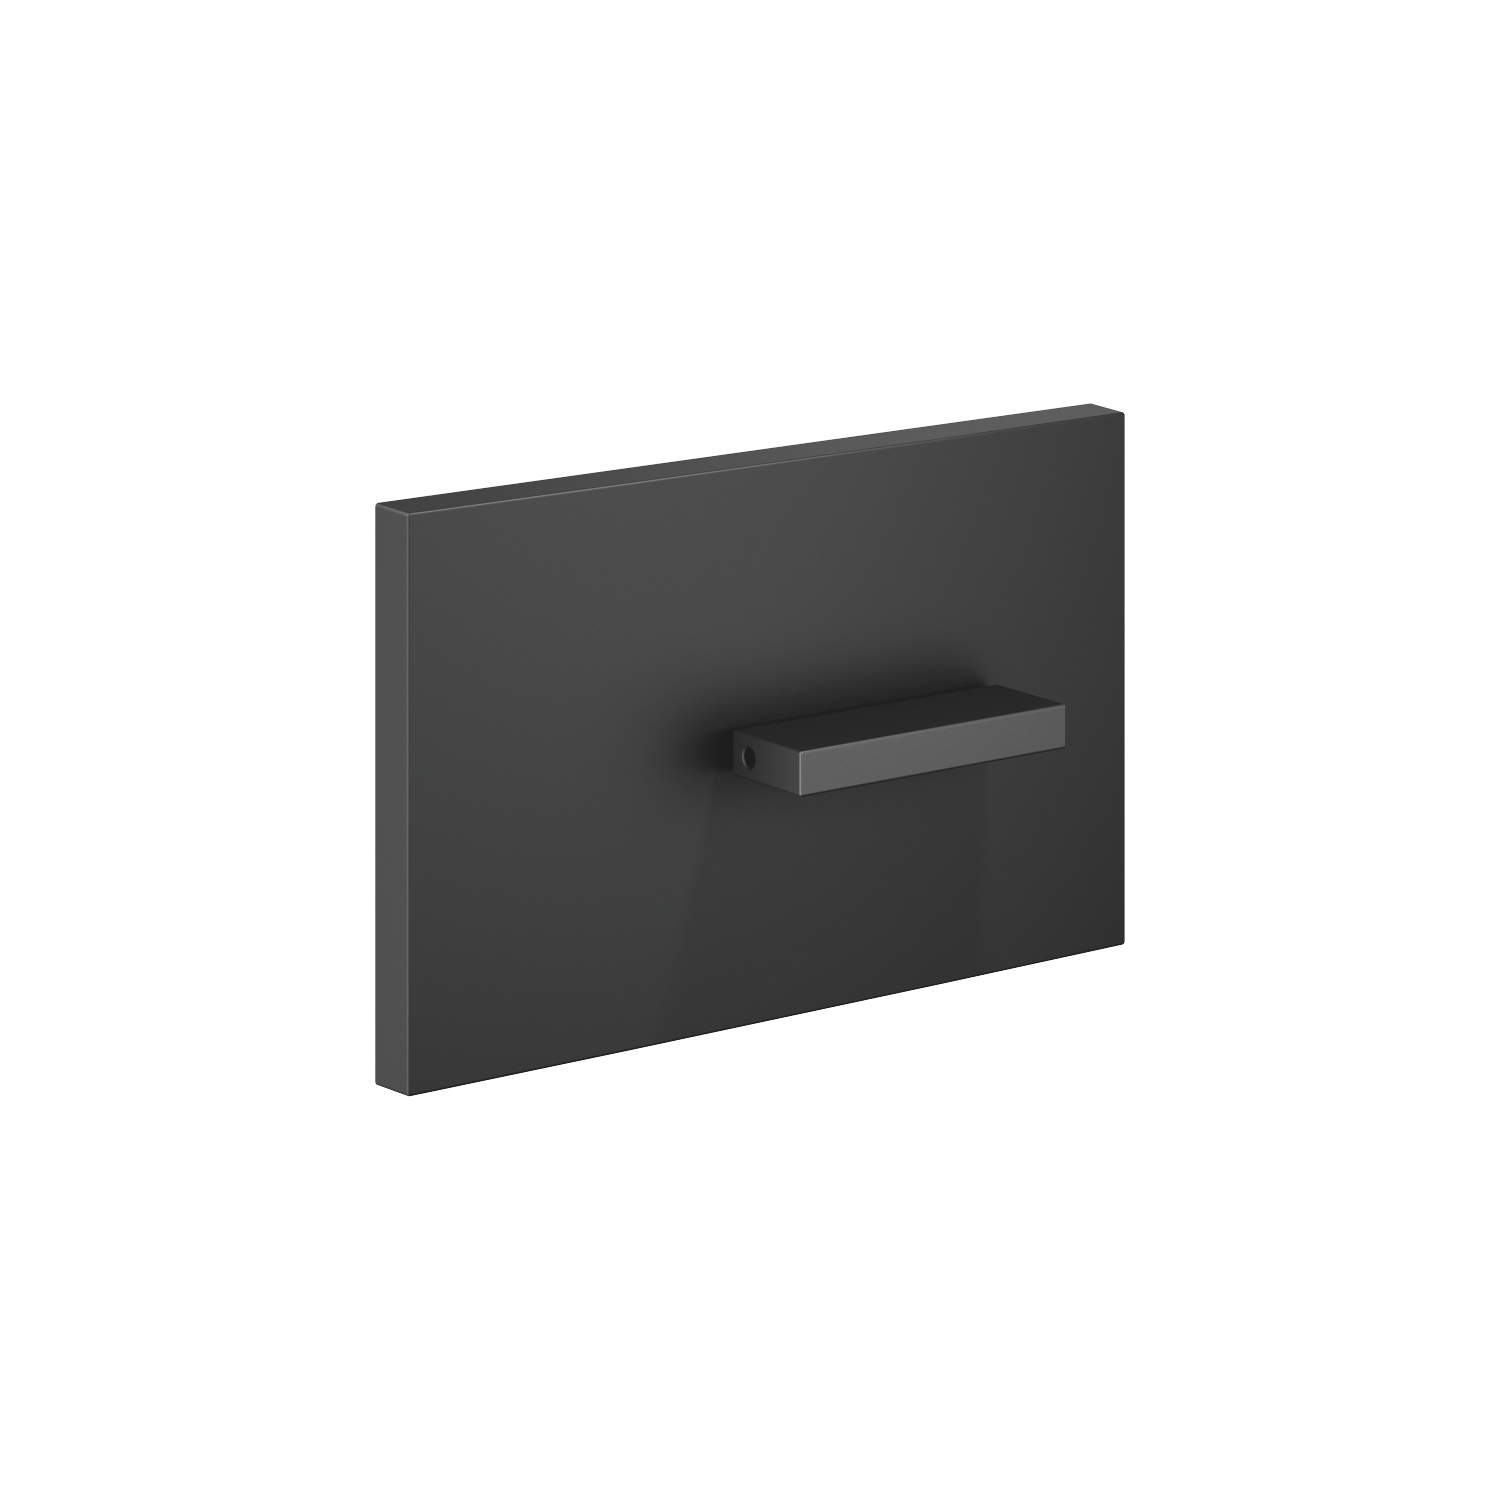 Cover plate for the concealed WC cistern made by TeCe - matt black